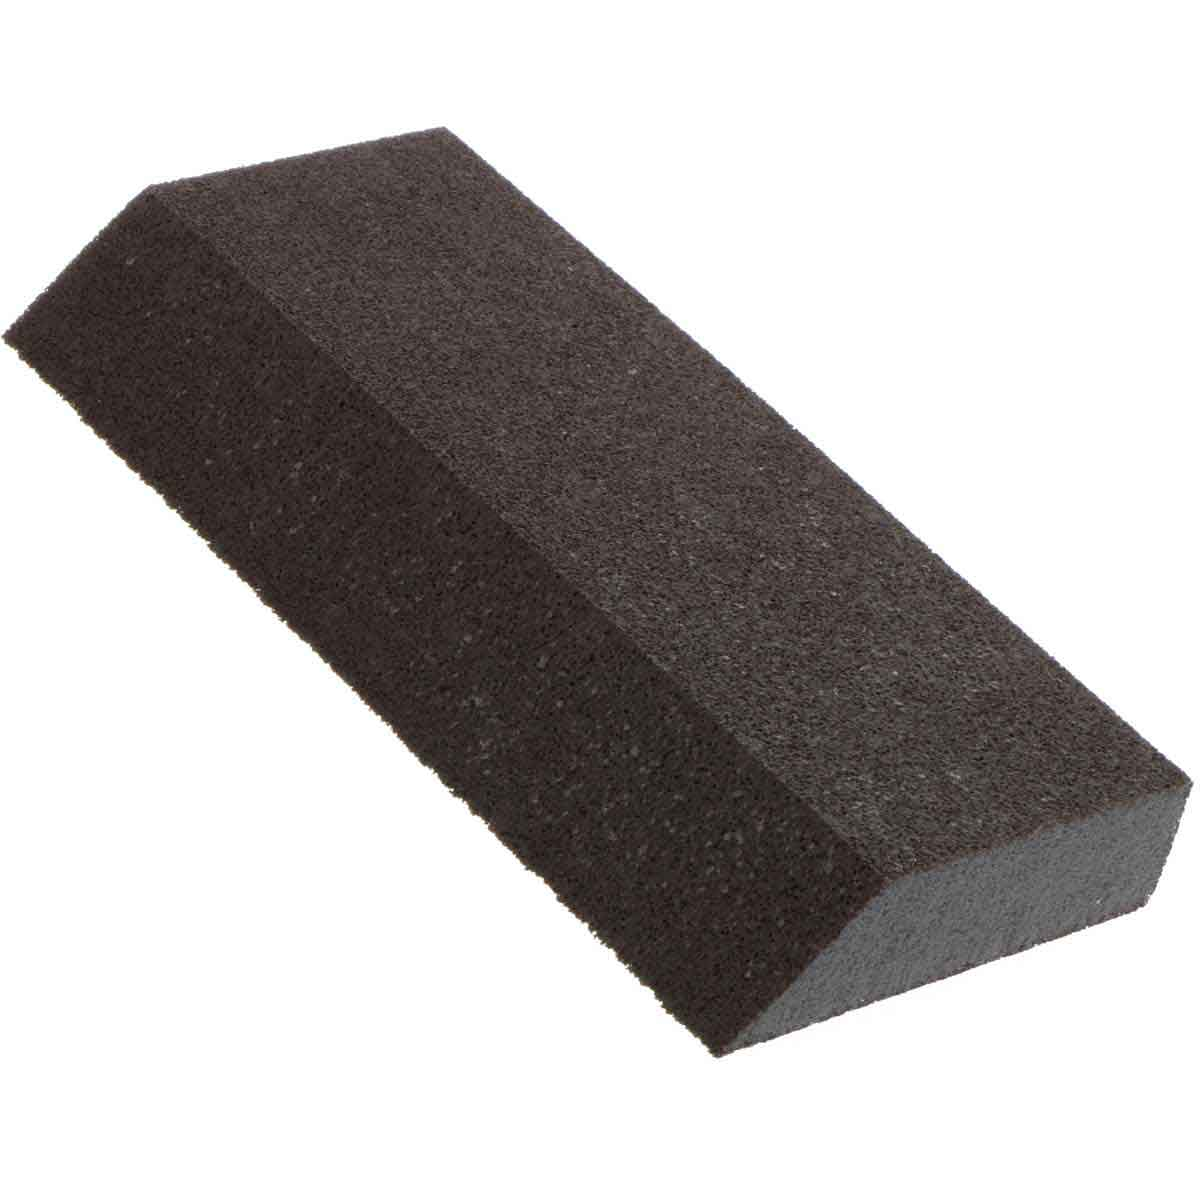 All-Wall XL Single Angle Sanding Sponge 8